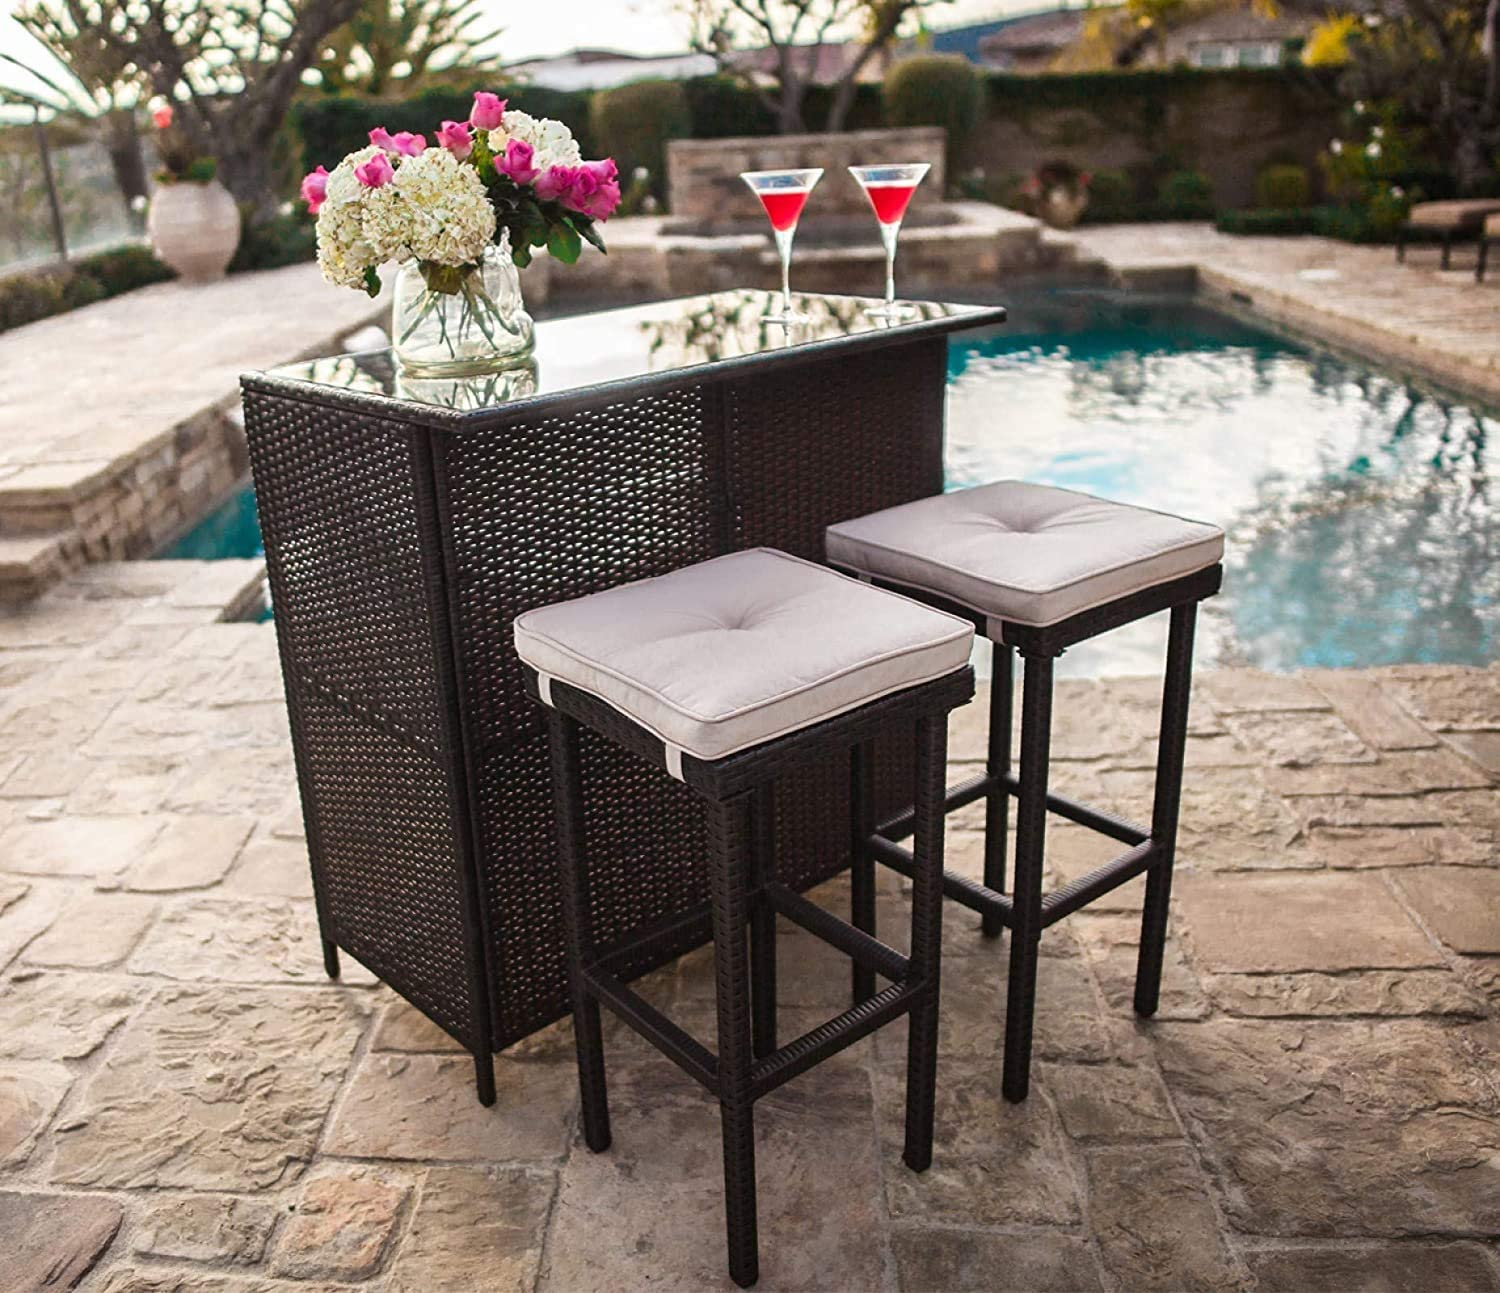 Cemeon Outdoor Bar 3-Piece Patio Bar Set with Two Stools and Glass Top Bar Table Brown Wicker Patio Furniture with Removable Cushions